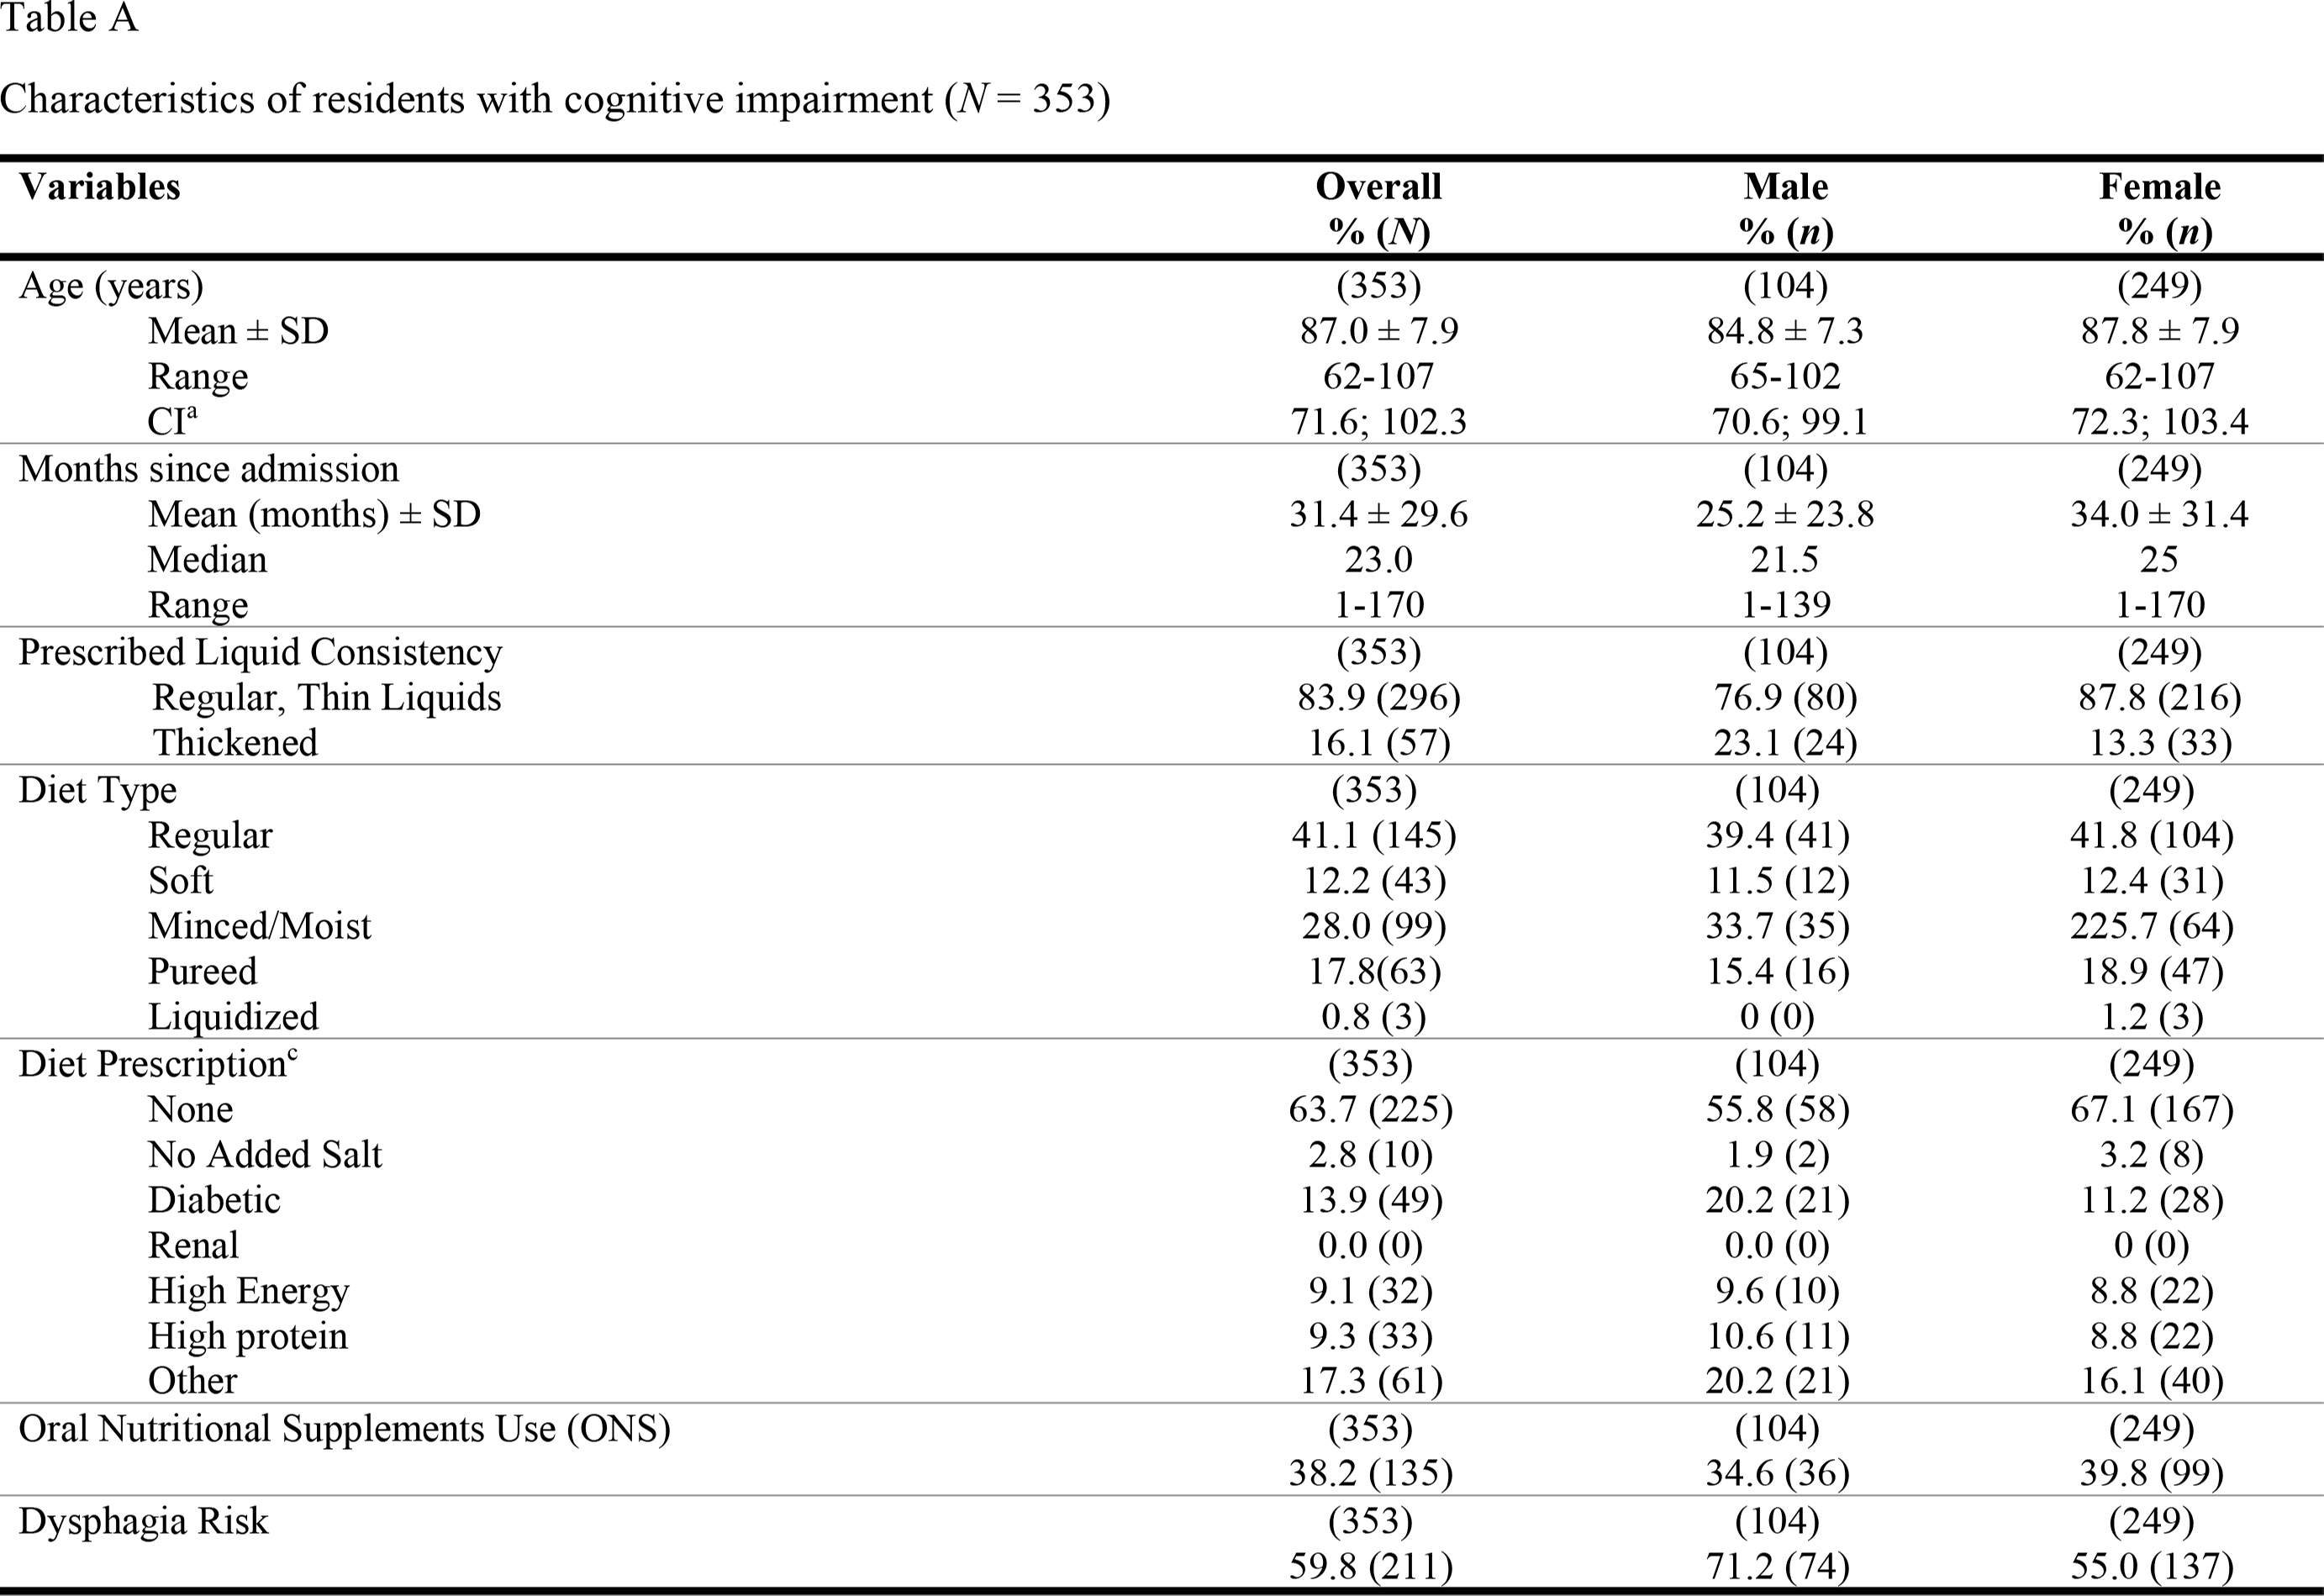 Characteristics of residents with cognitive impairment (N = 353)